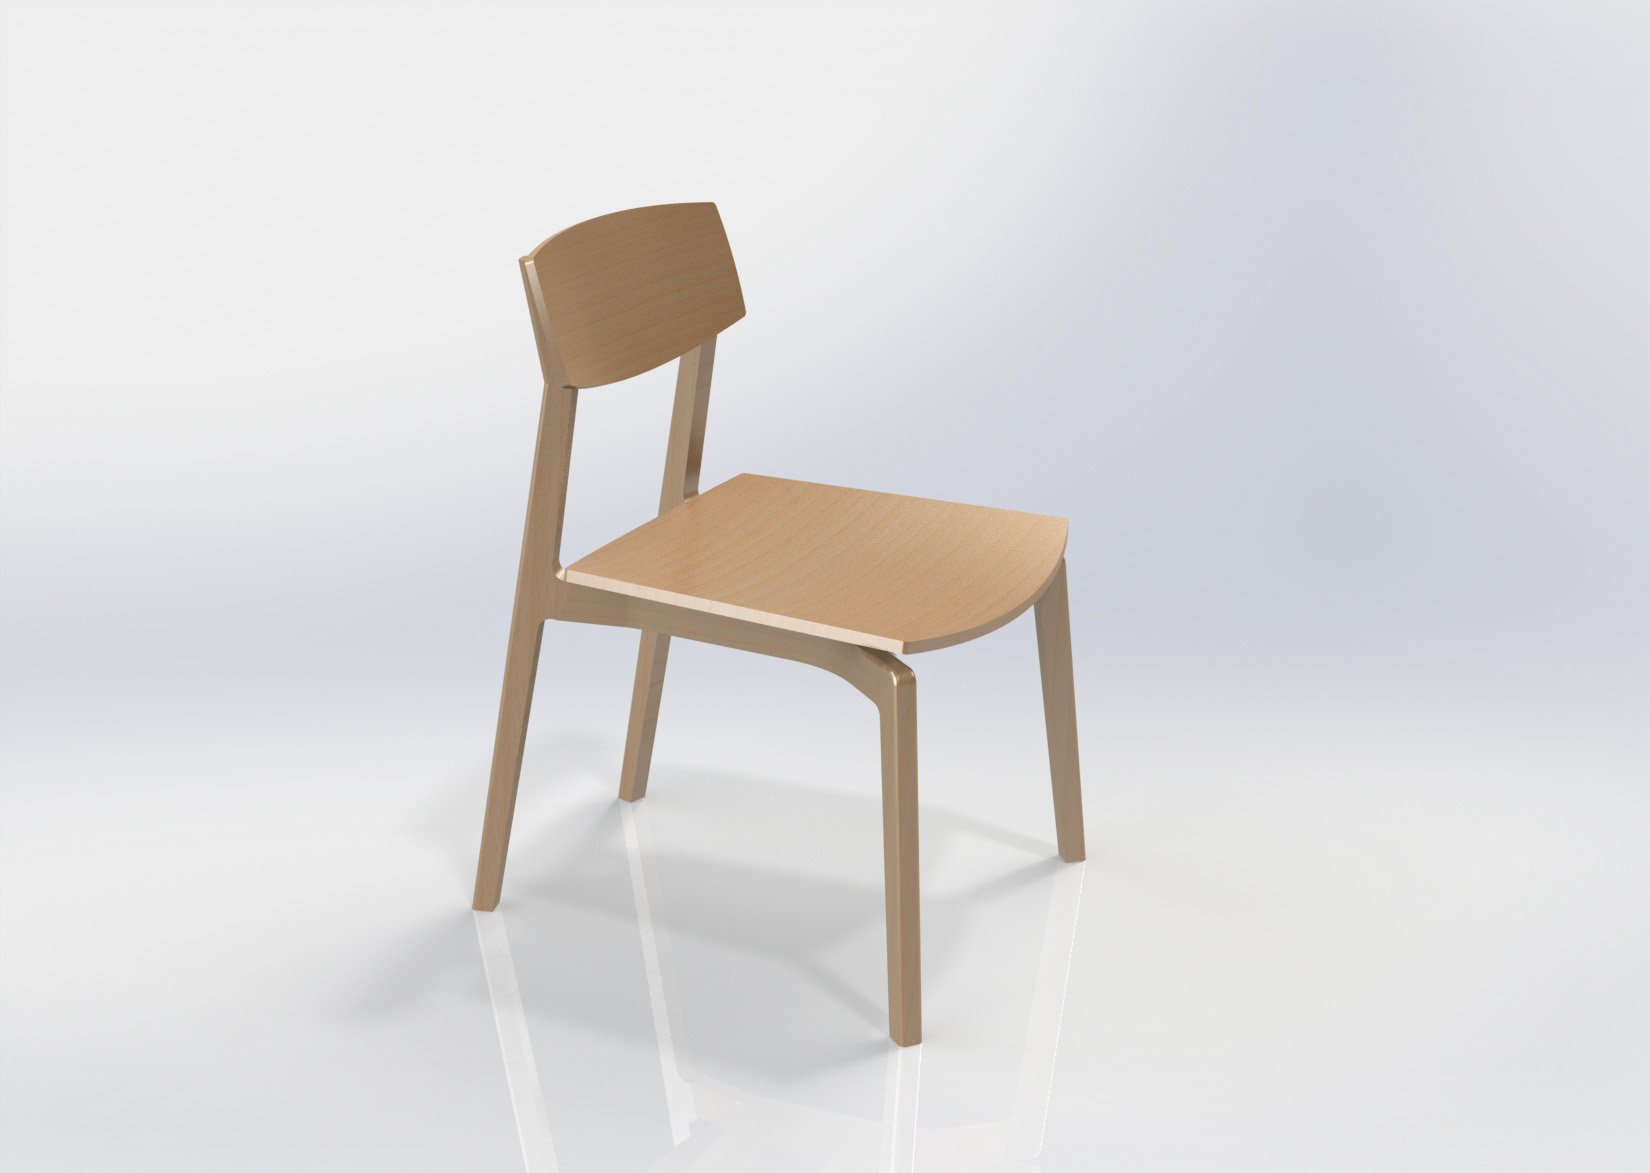 AC06 Side Chair Render SolidWorks